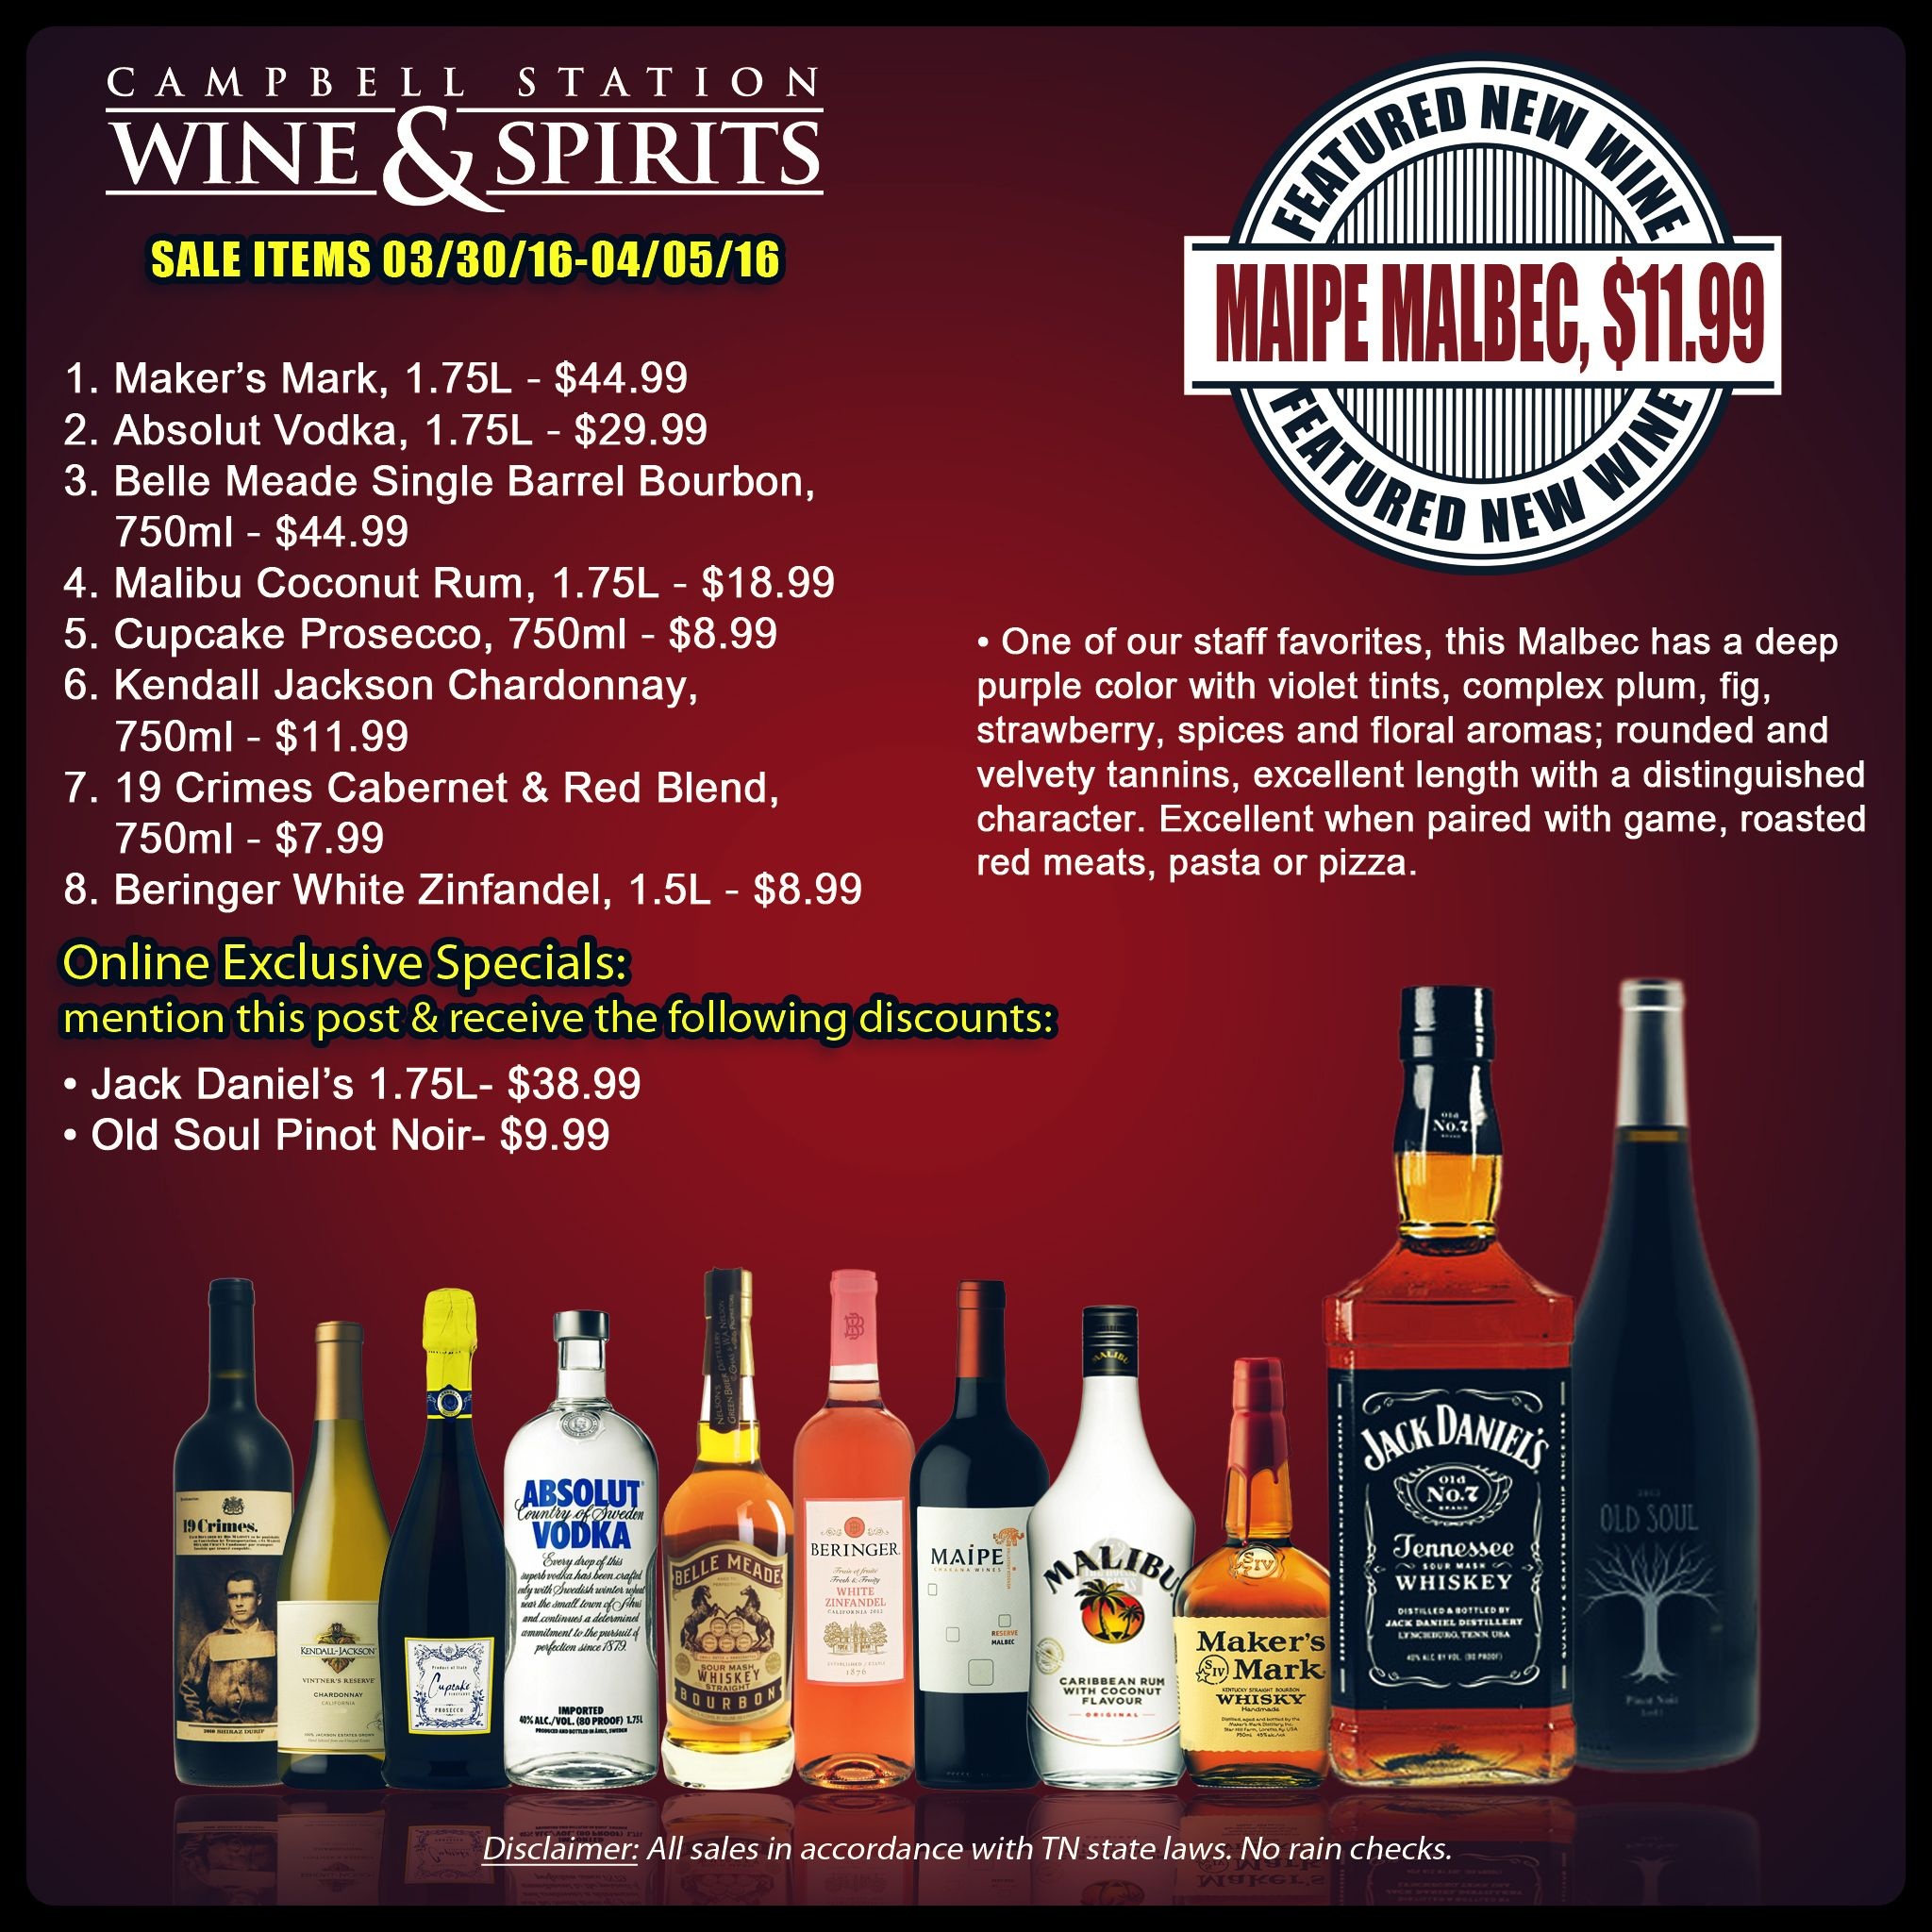 Great Wine Beer And Spirit Deals Are Coming Your Way This Week Enjoy Great Savings And Choose From Our List Of Prod Wine Sale Cupcake Prosecco Absolut Vodka